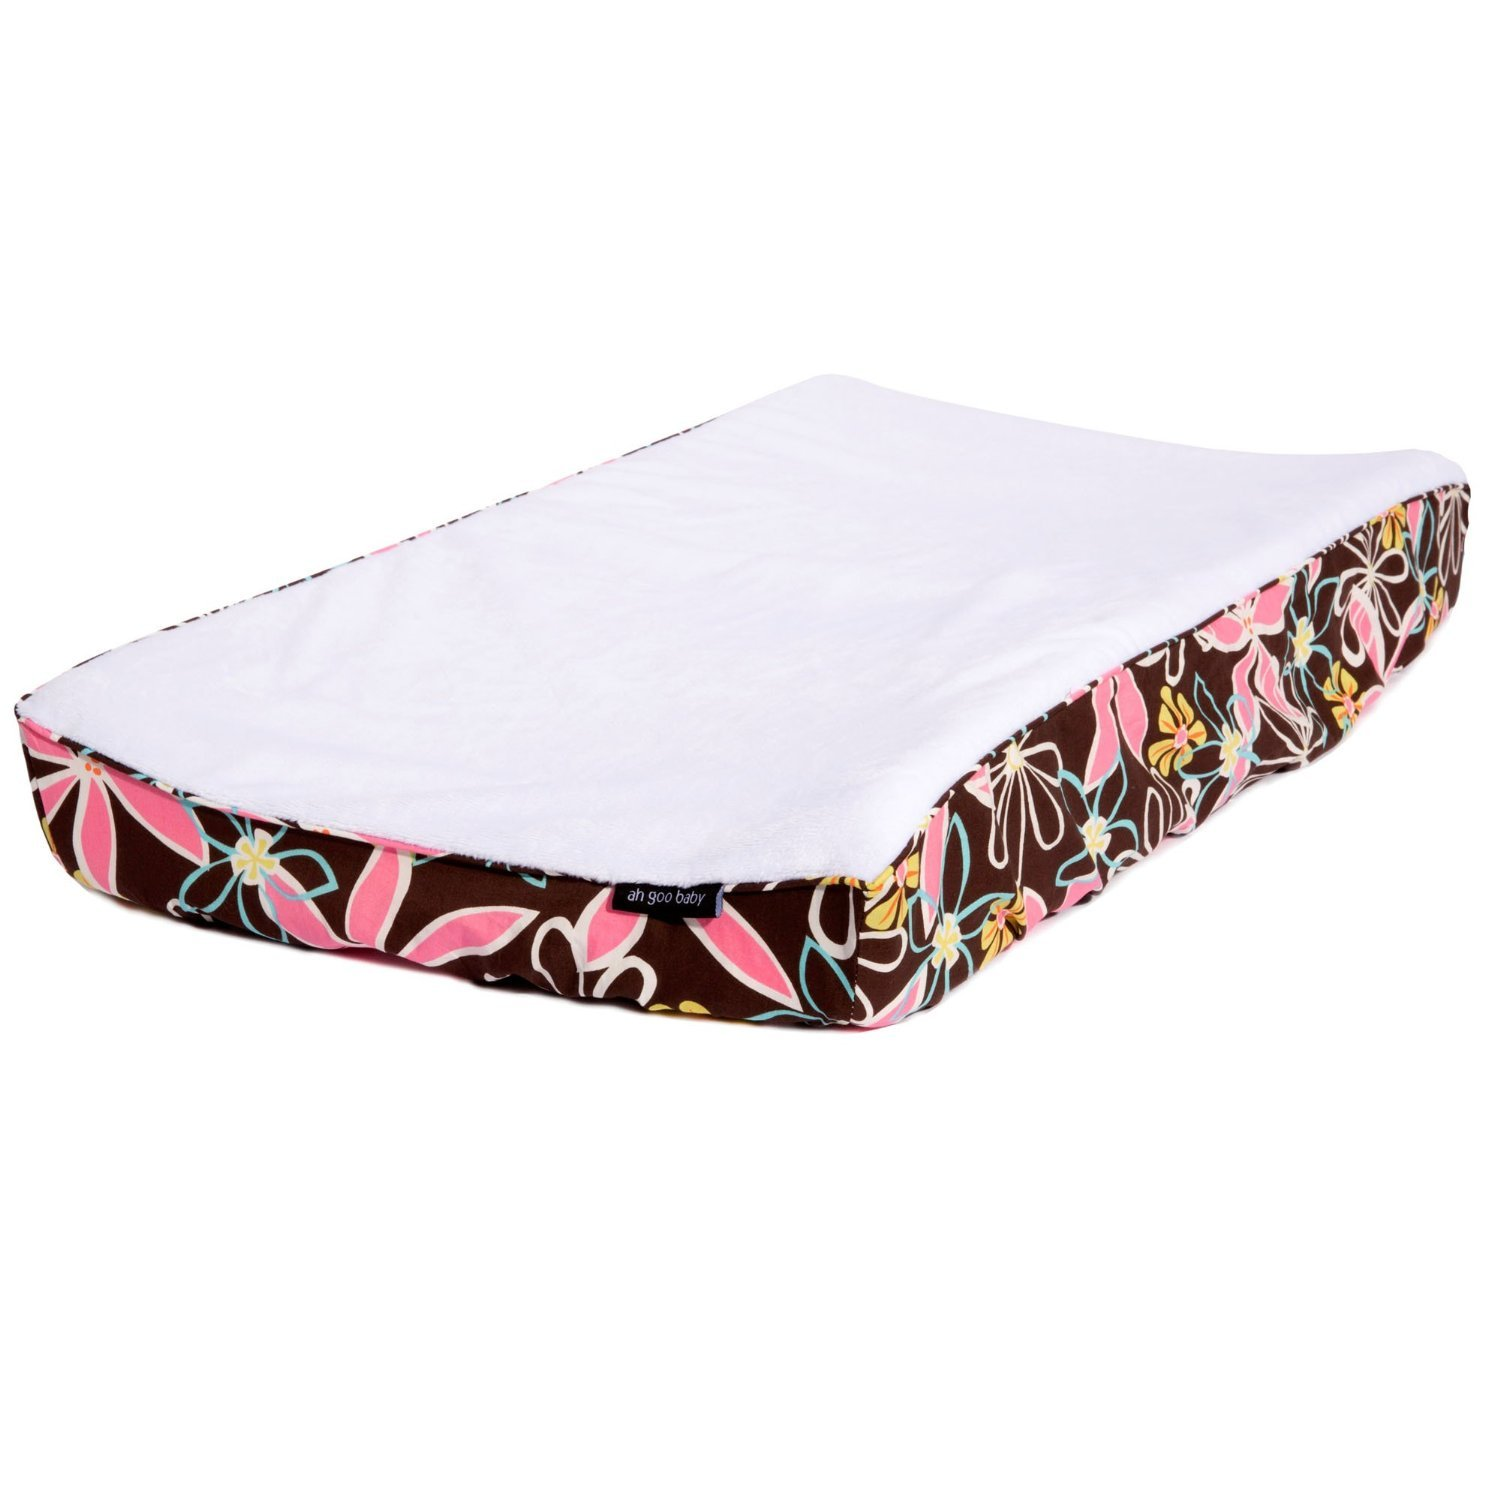 Image of Ah Goo Baby 100% Cotton Changing Pad Cover - Retro Daisy